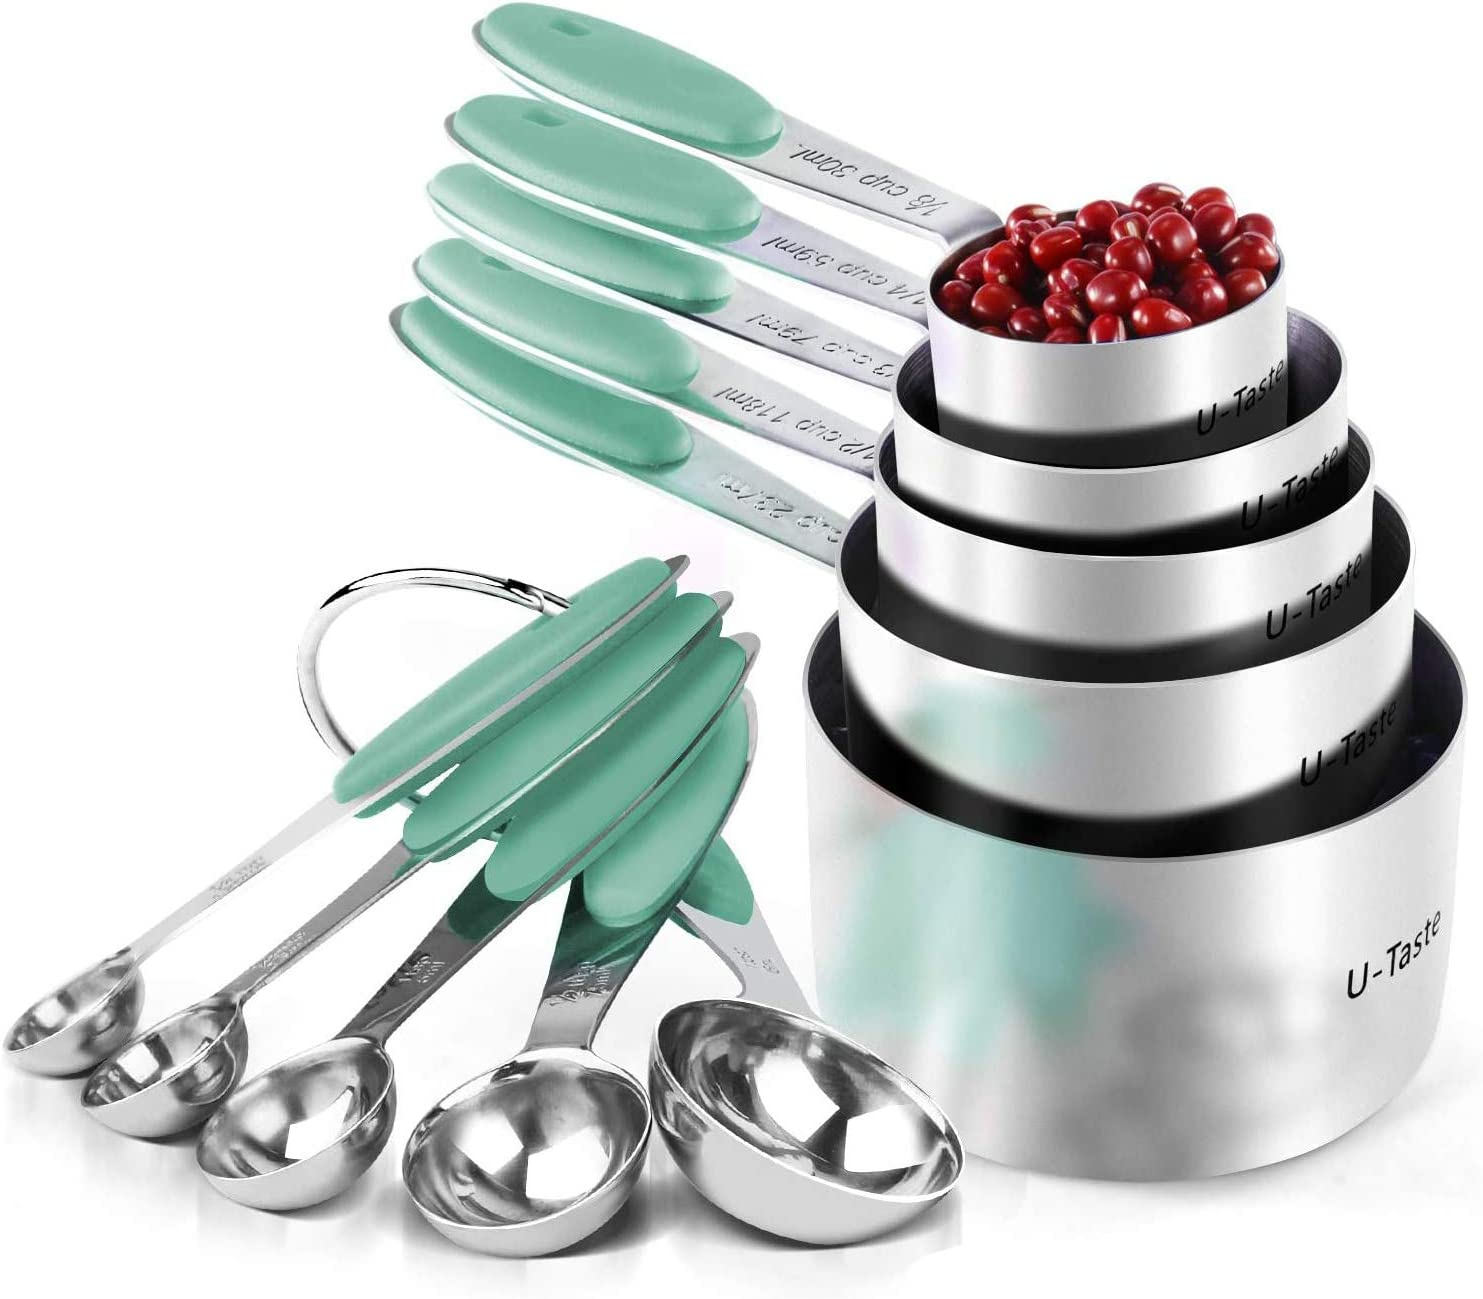 Measuring Cups : U-Taste 18/8 Stainless Steel Measuring Cups and Spoons Set of 10 Piece, Upgraded Thickness Handle(Aqua Sky)